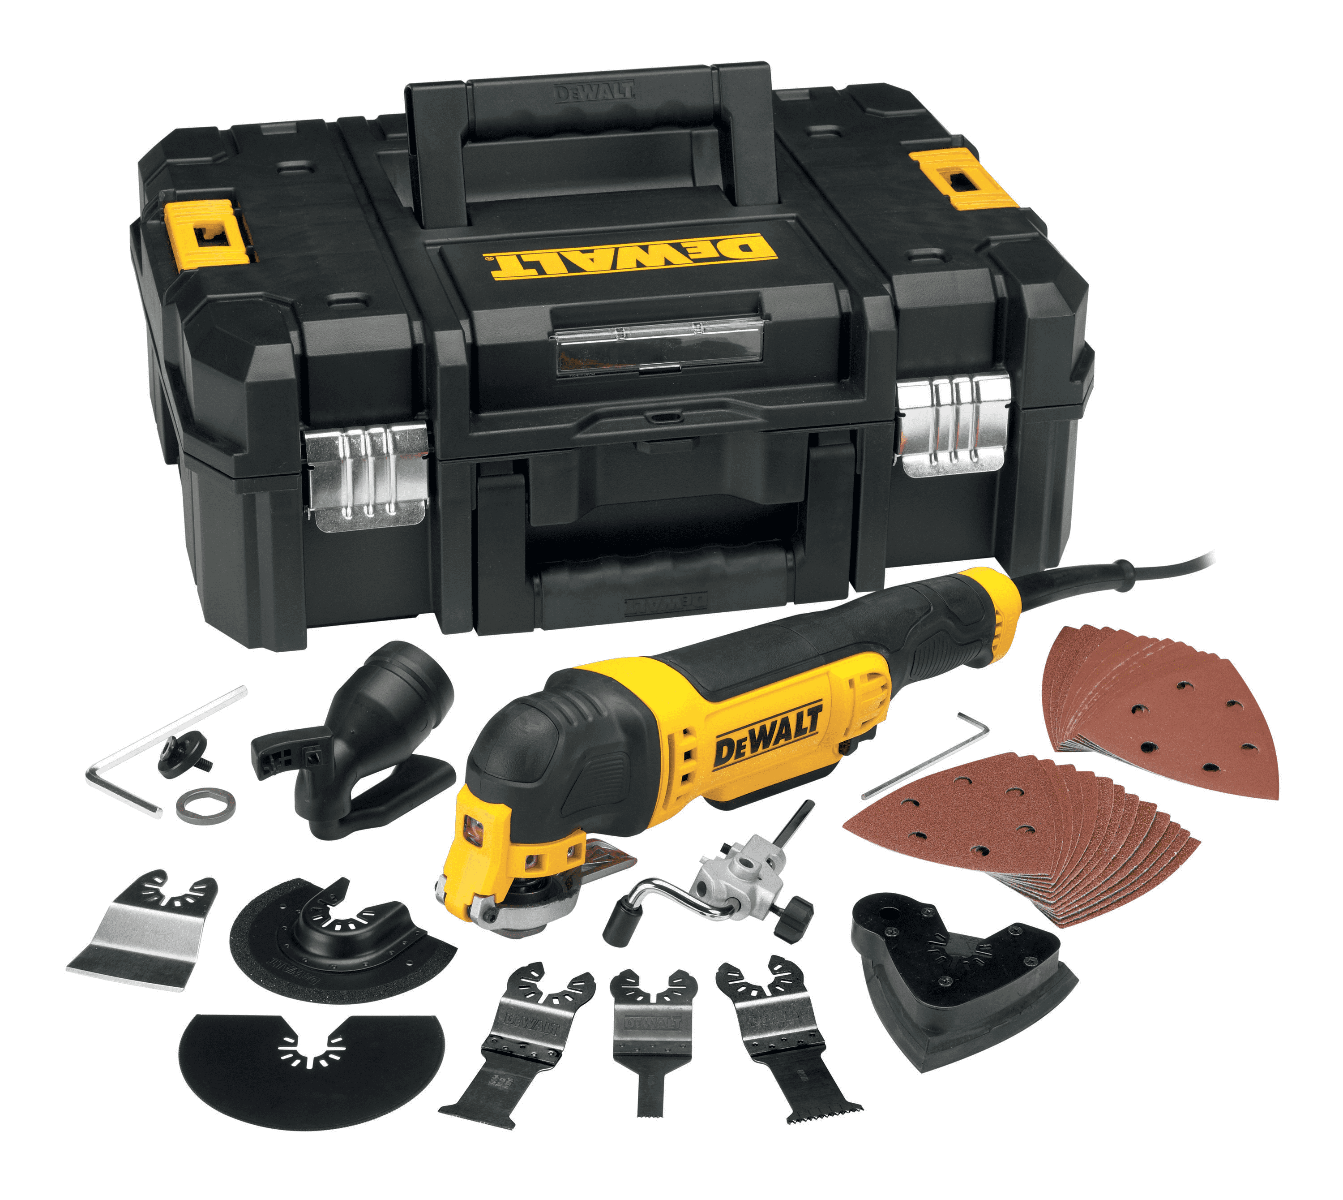 Dewalt DWE315KT Multi Tool Kit c/w Accessories, 240V